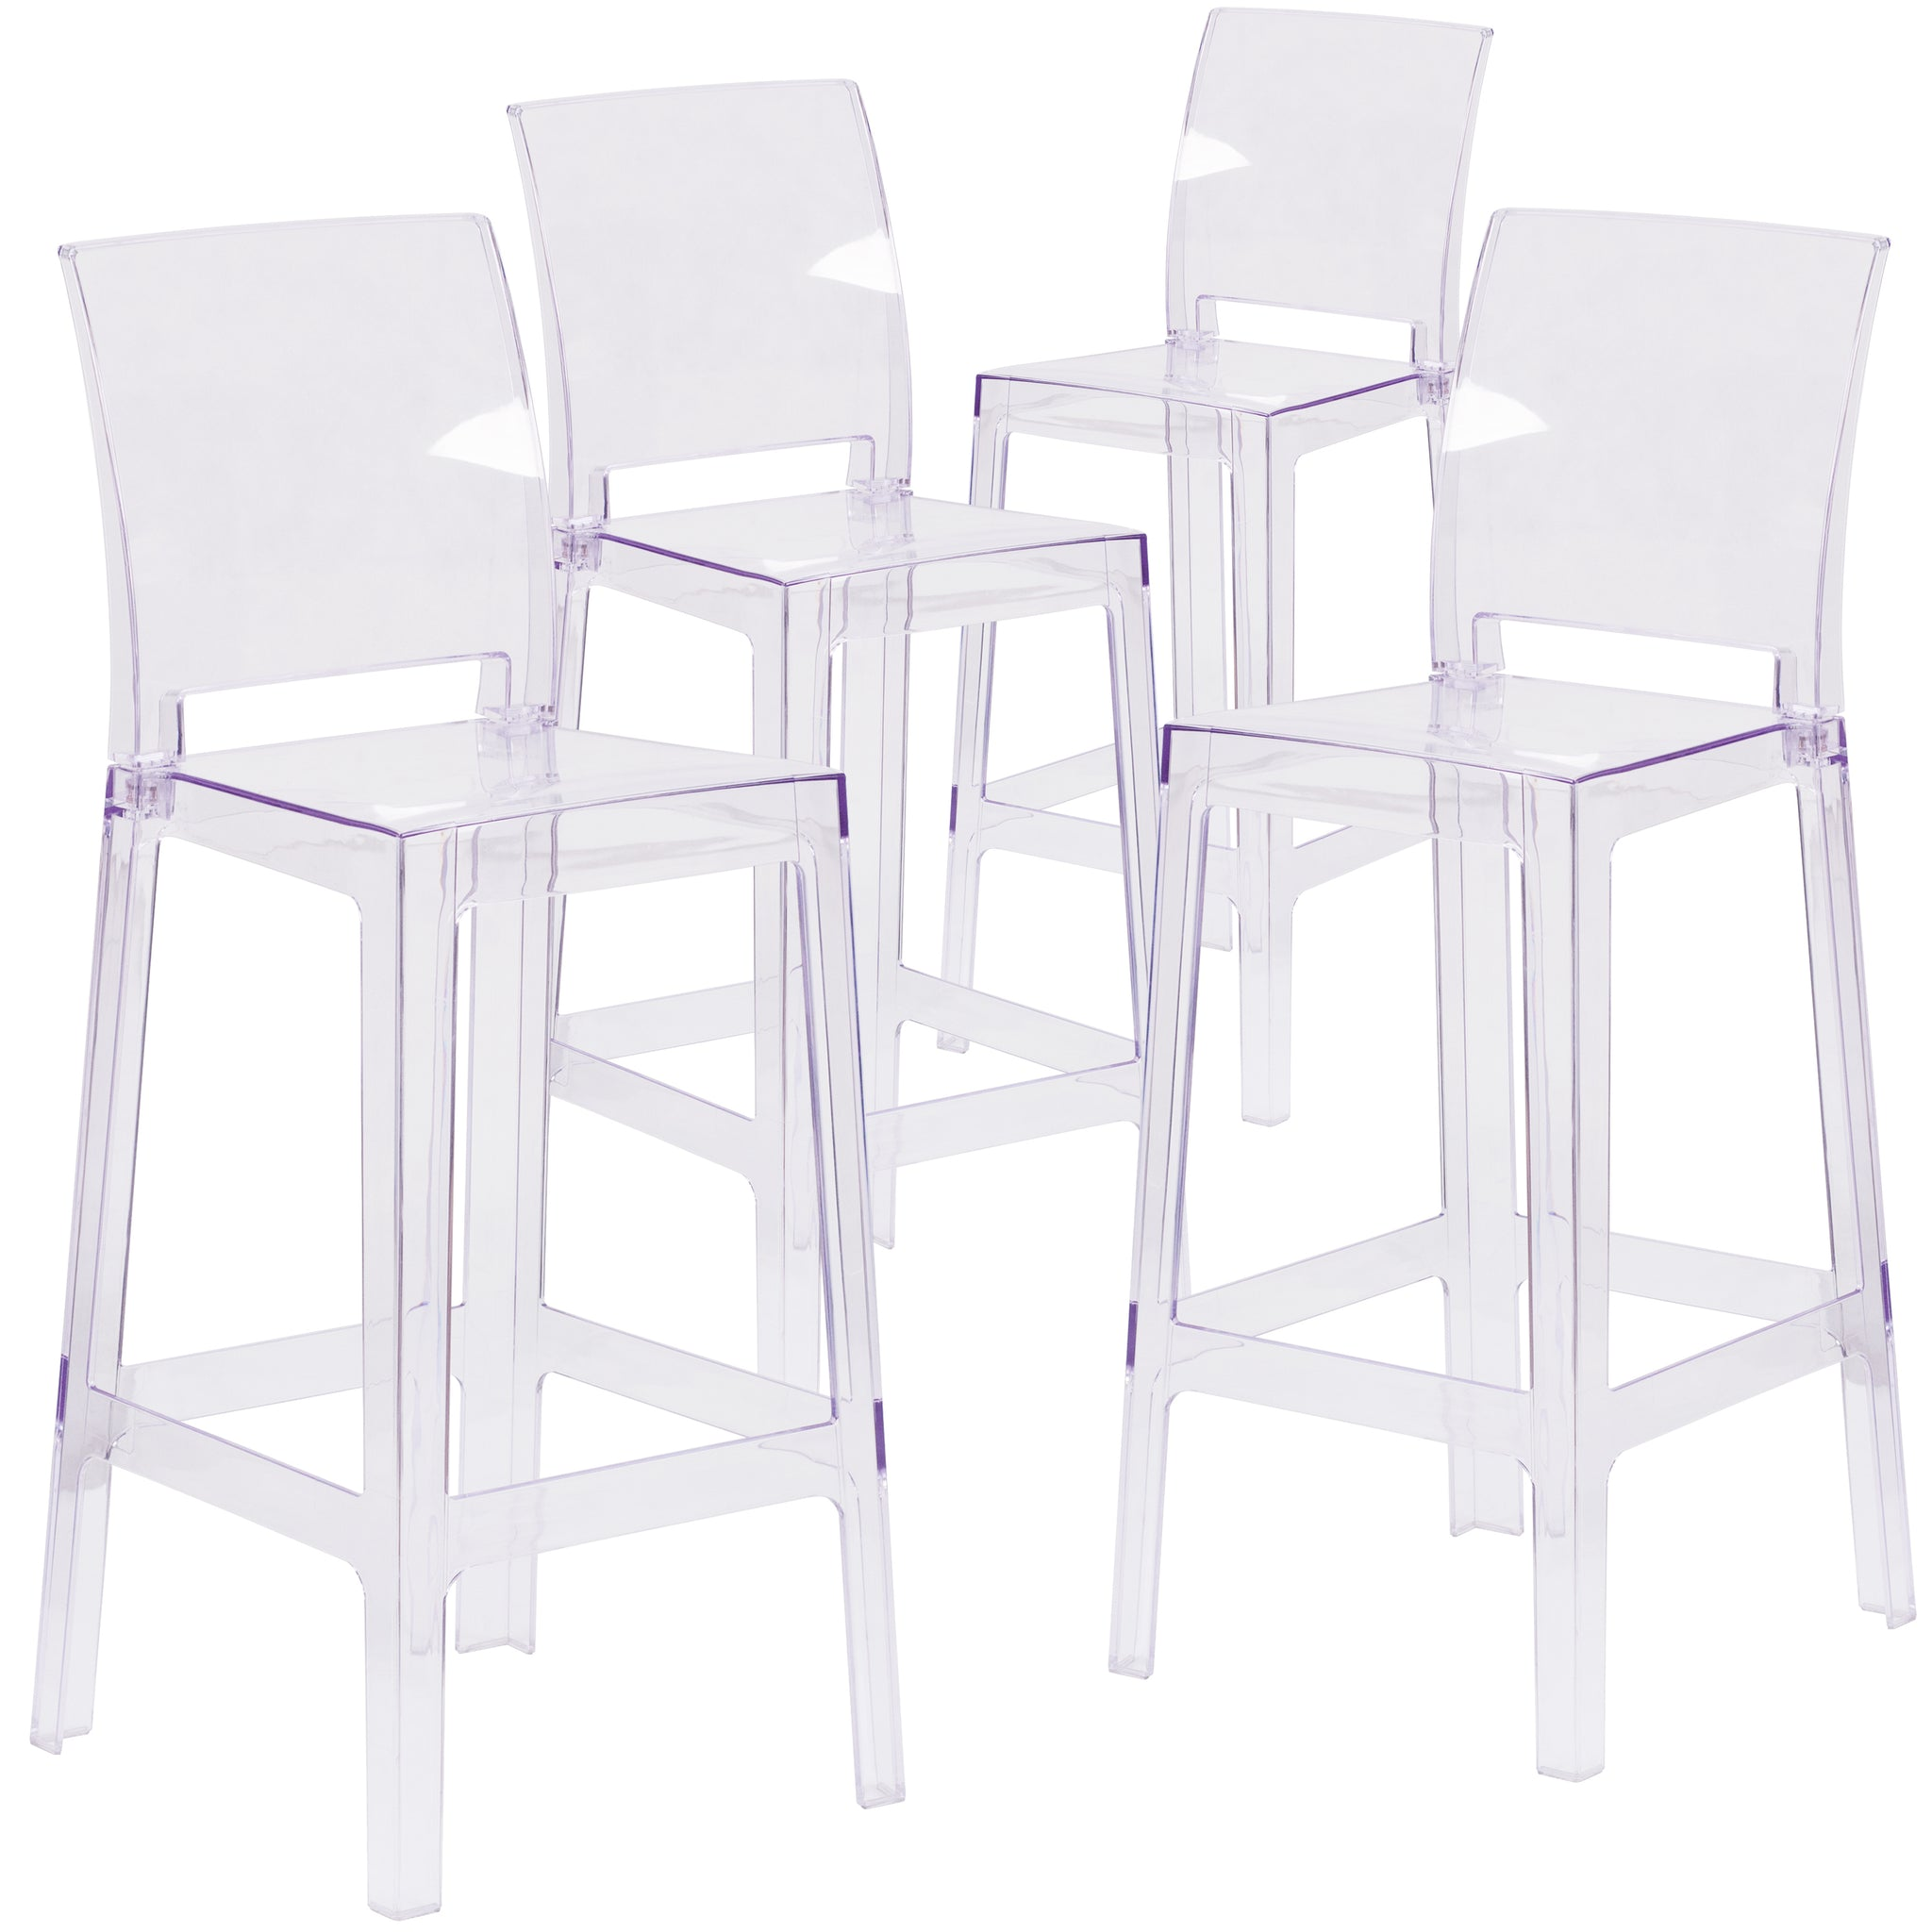 4 Pk. Ghost Barstool in Transparent Crystal with Square Back: Transparent Crystal